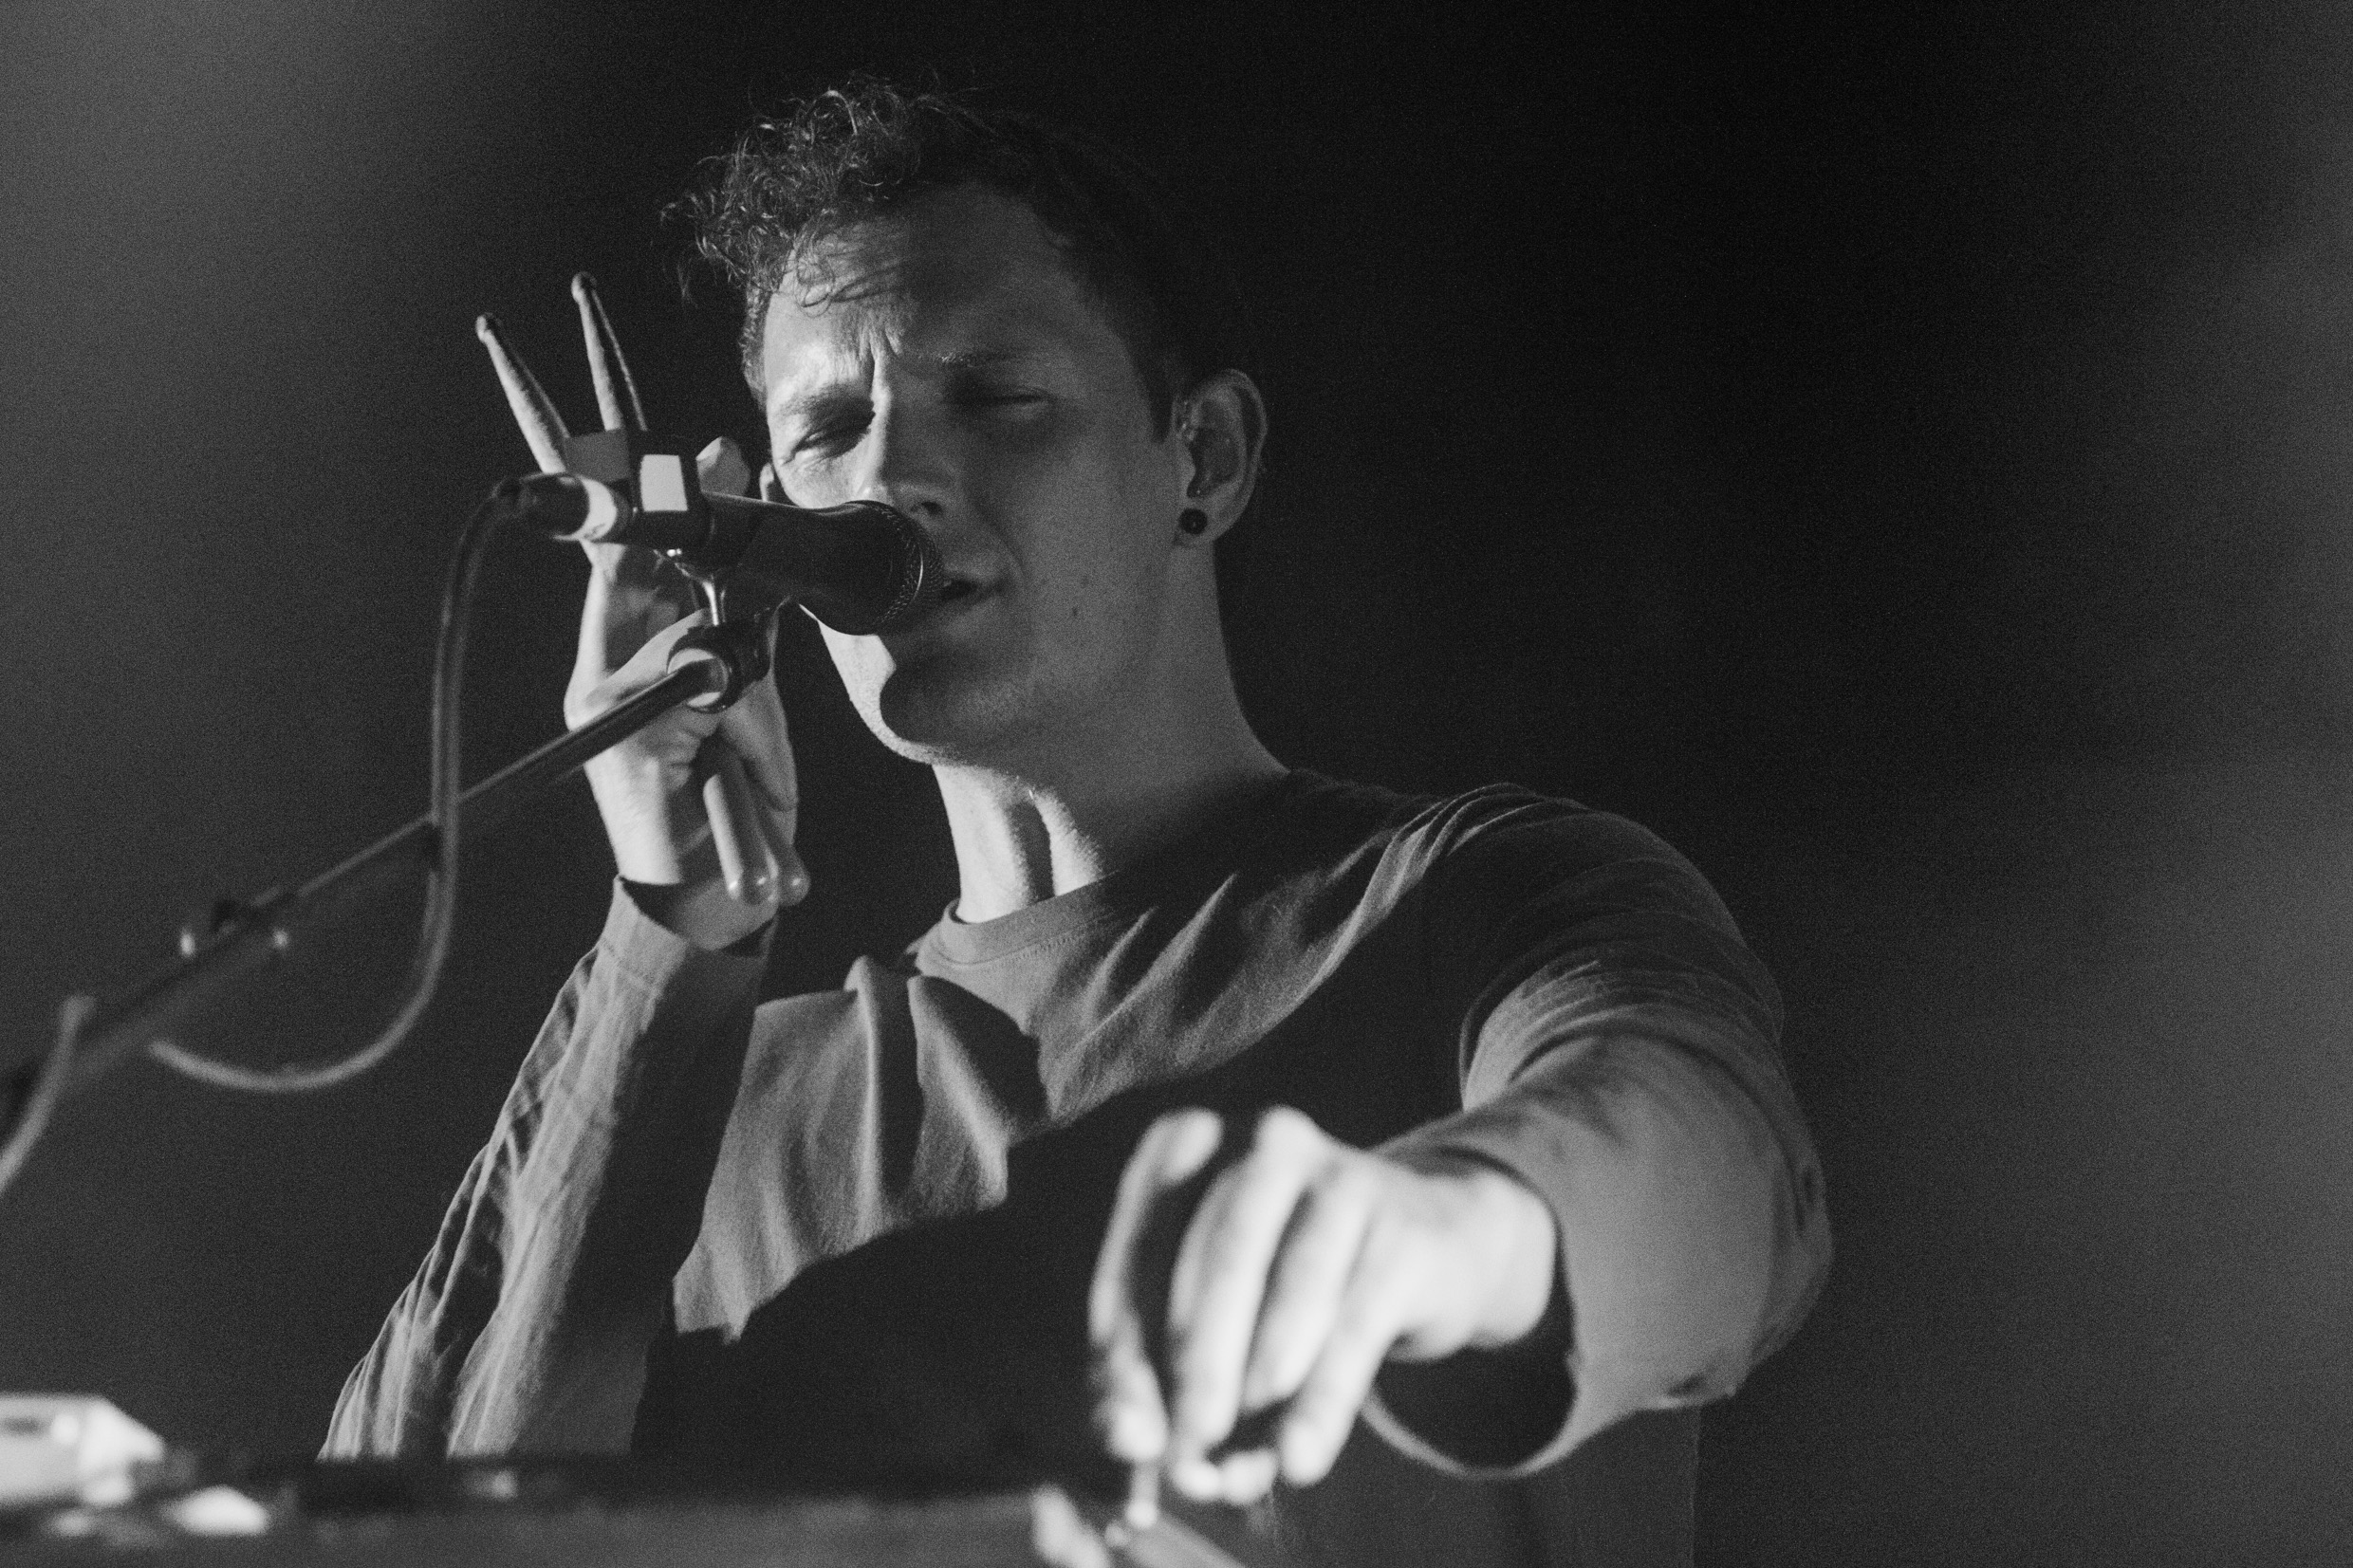 The Kite String Tangle - The Forum, Melbourne 2018